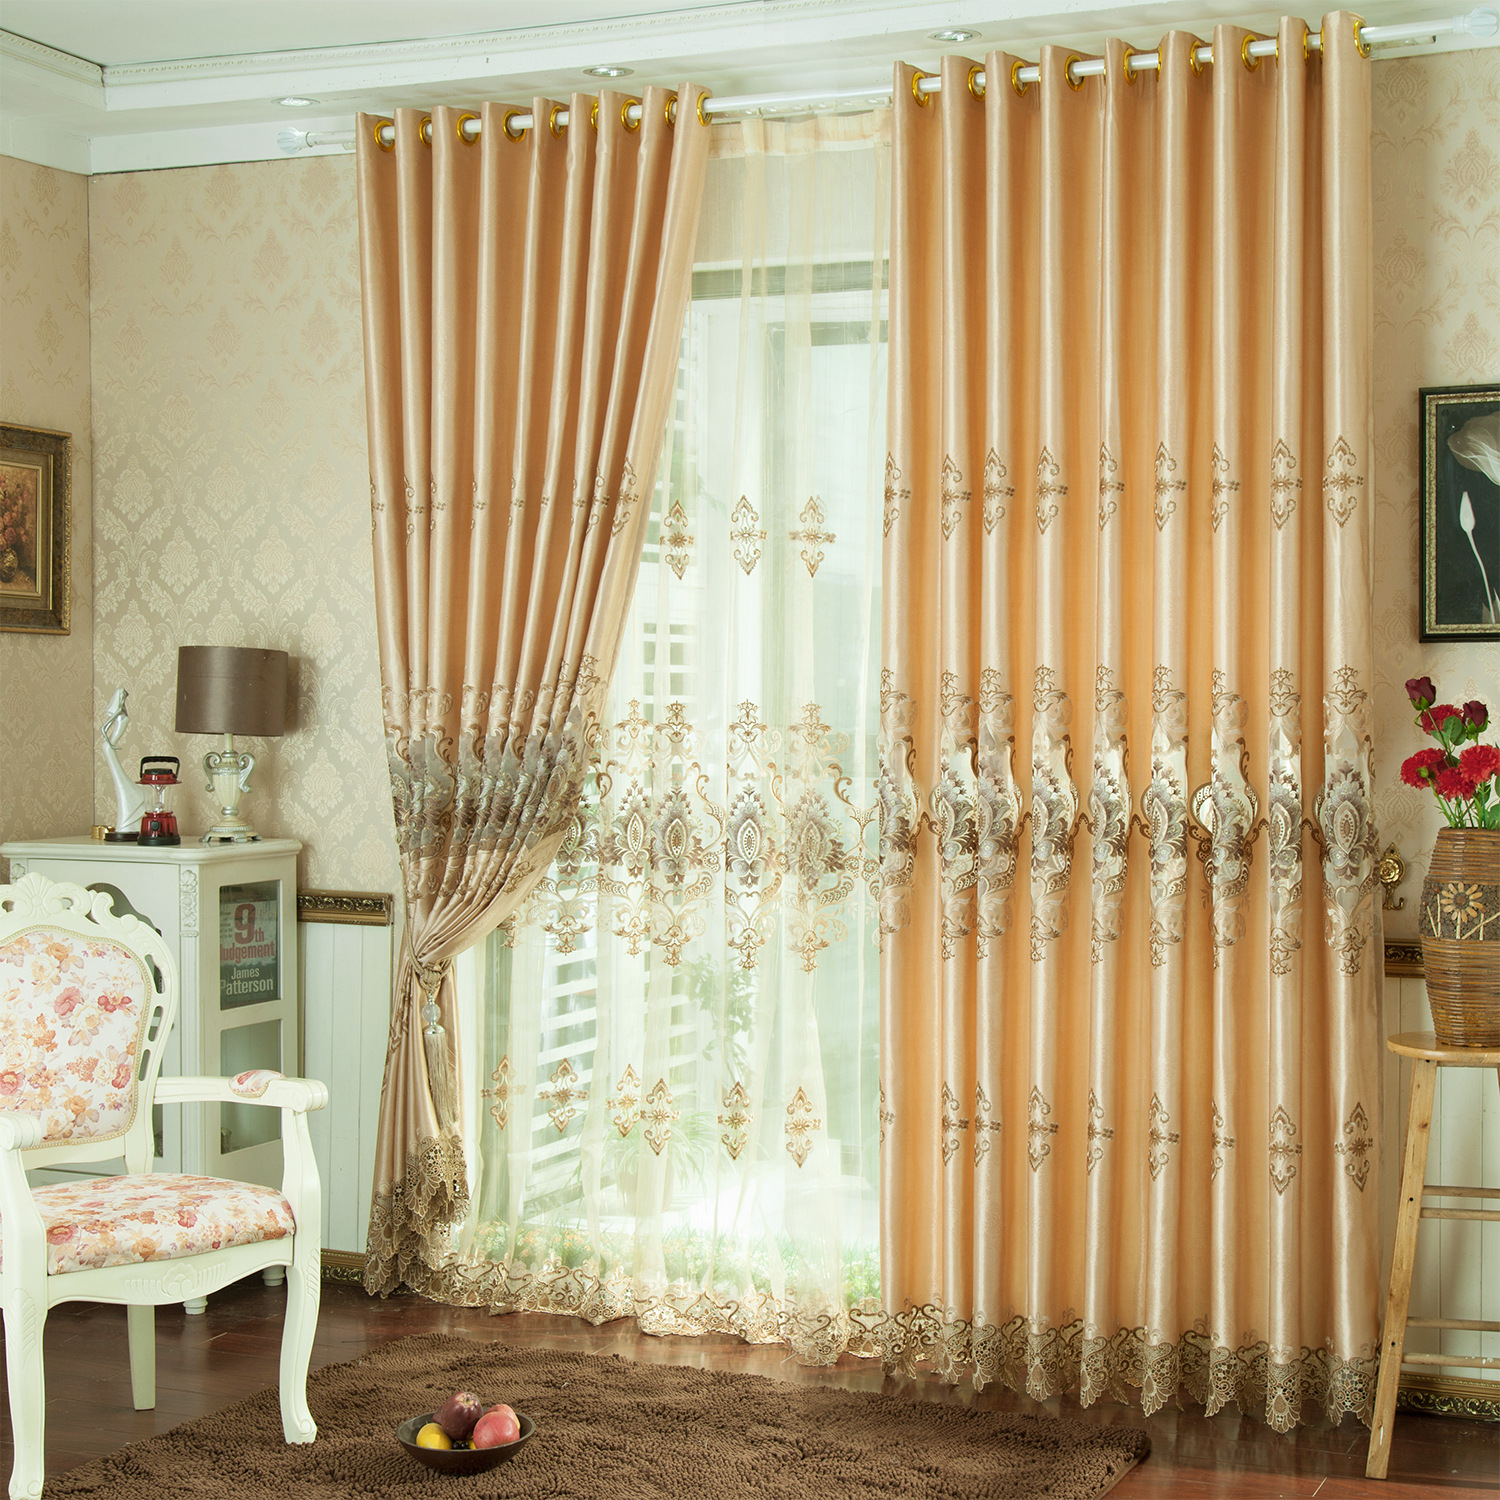 Curtains for bedroom 2016 - Curtains For Living Dining Room Bedroom 2016 New Curtain High End European Style Curtains Finished